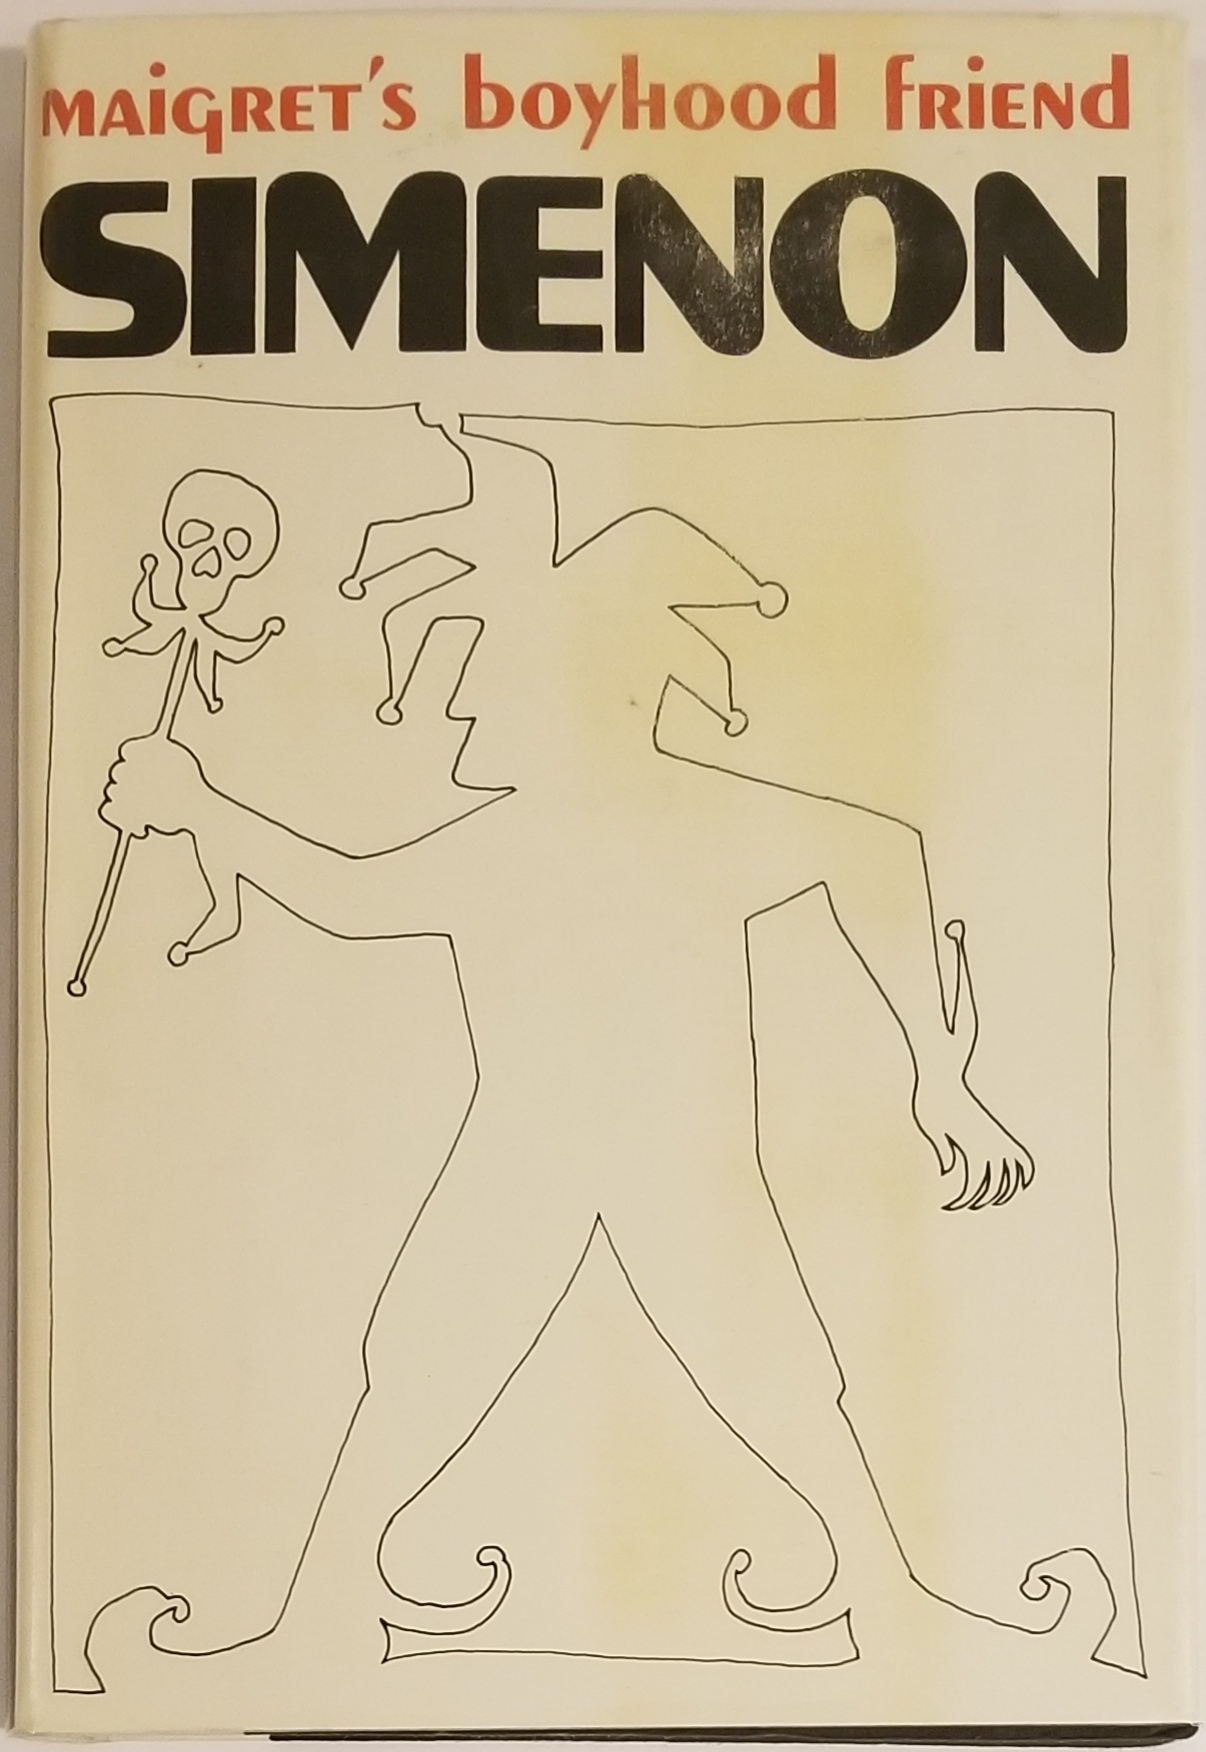 MAIGRET'S BOYHOOD FRIEND. George Simenon.